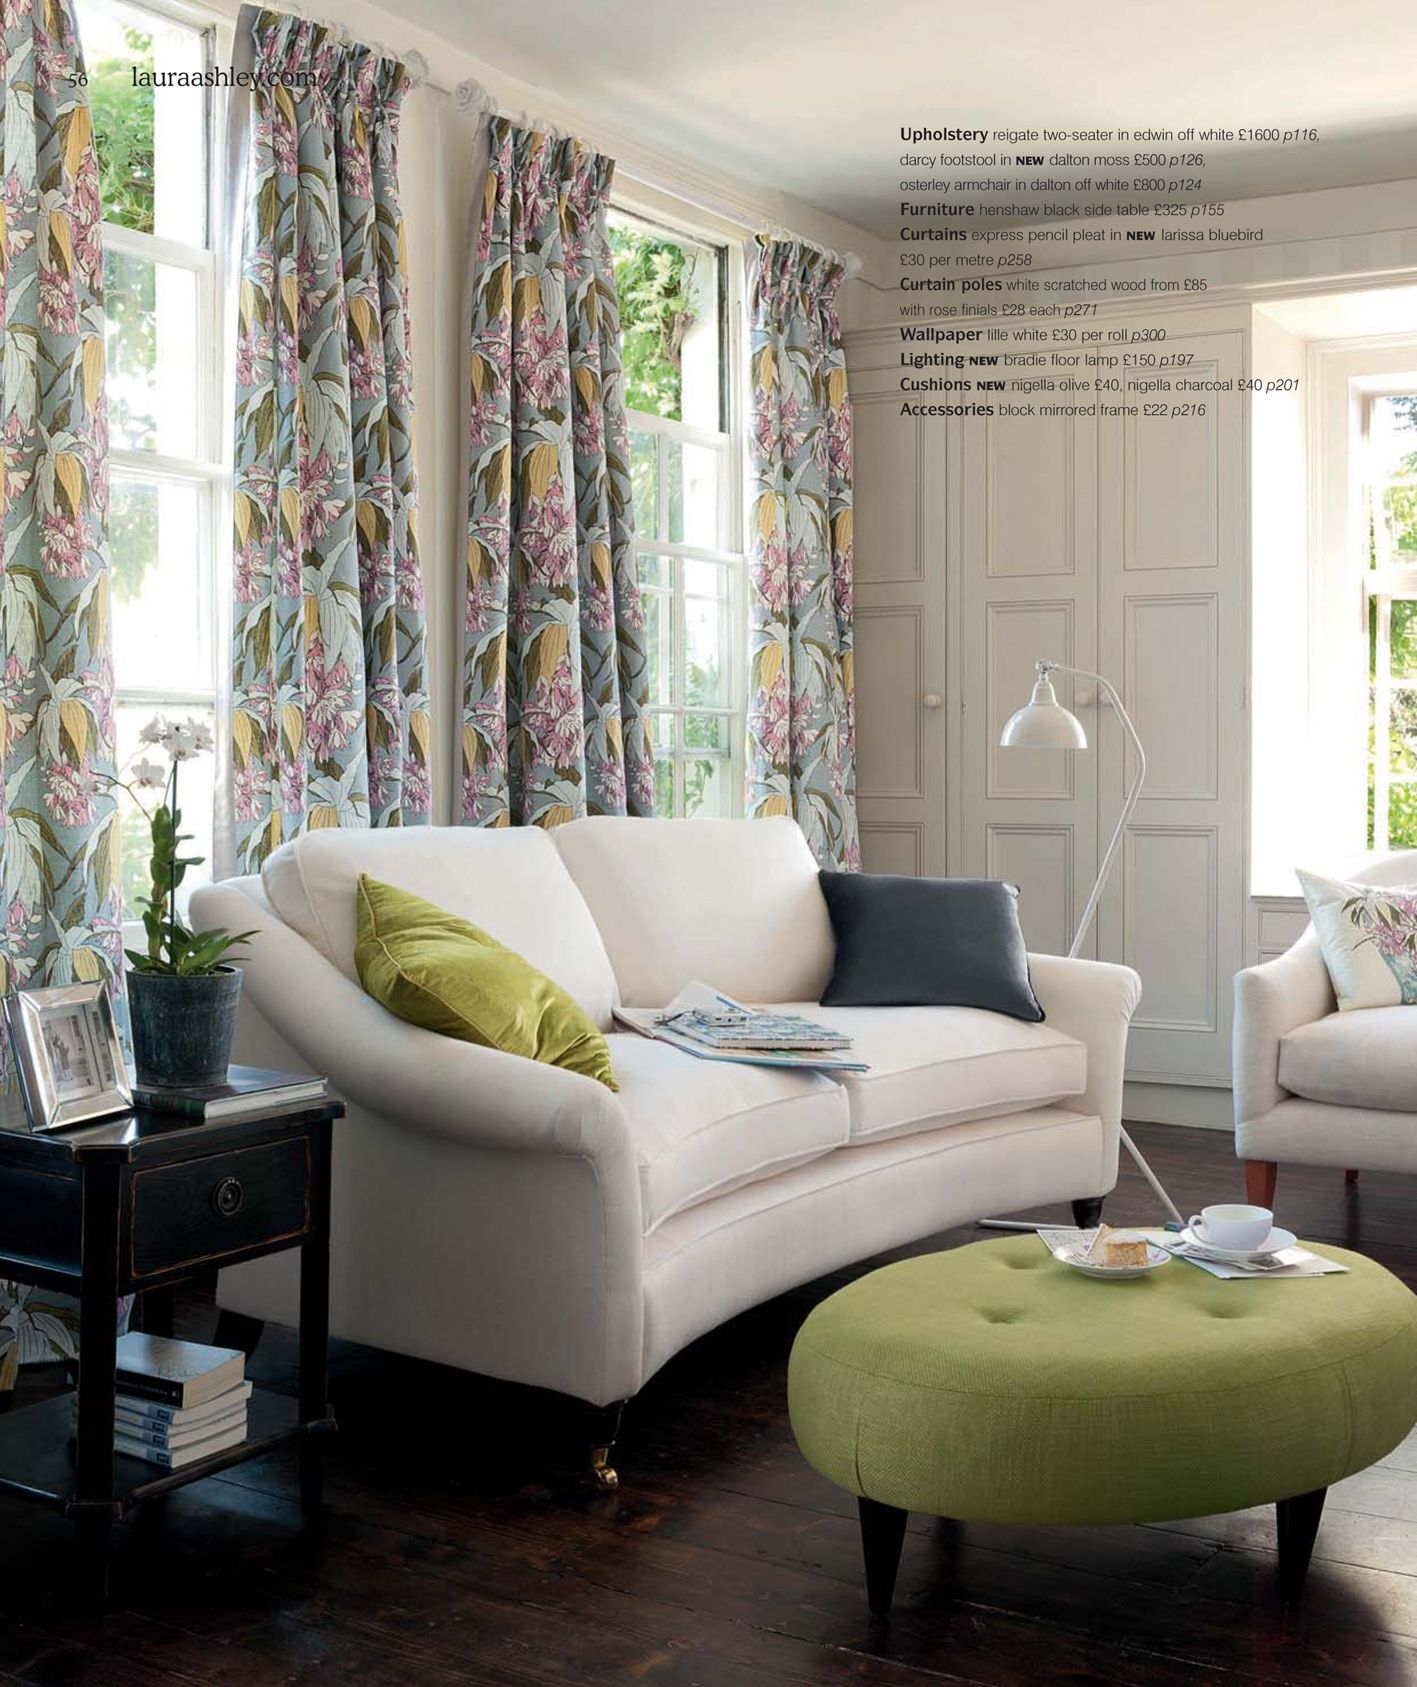 Laura Ashley & Louise Body 'Glasshouse' Collection.